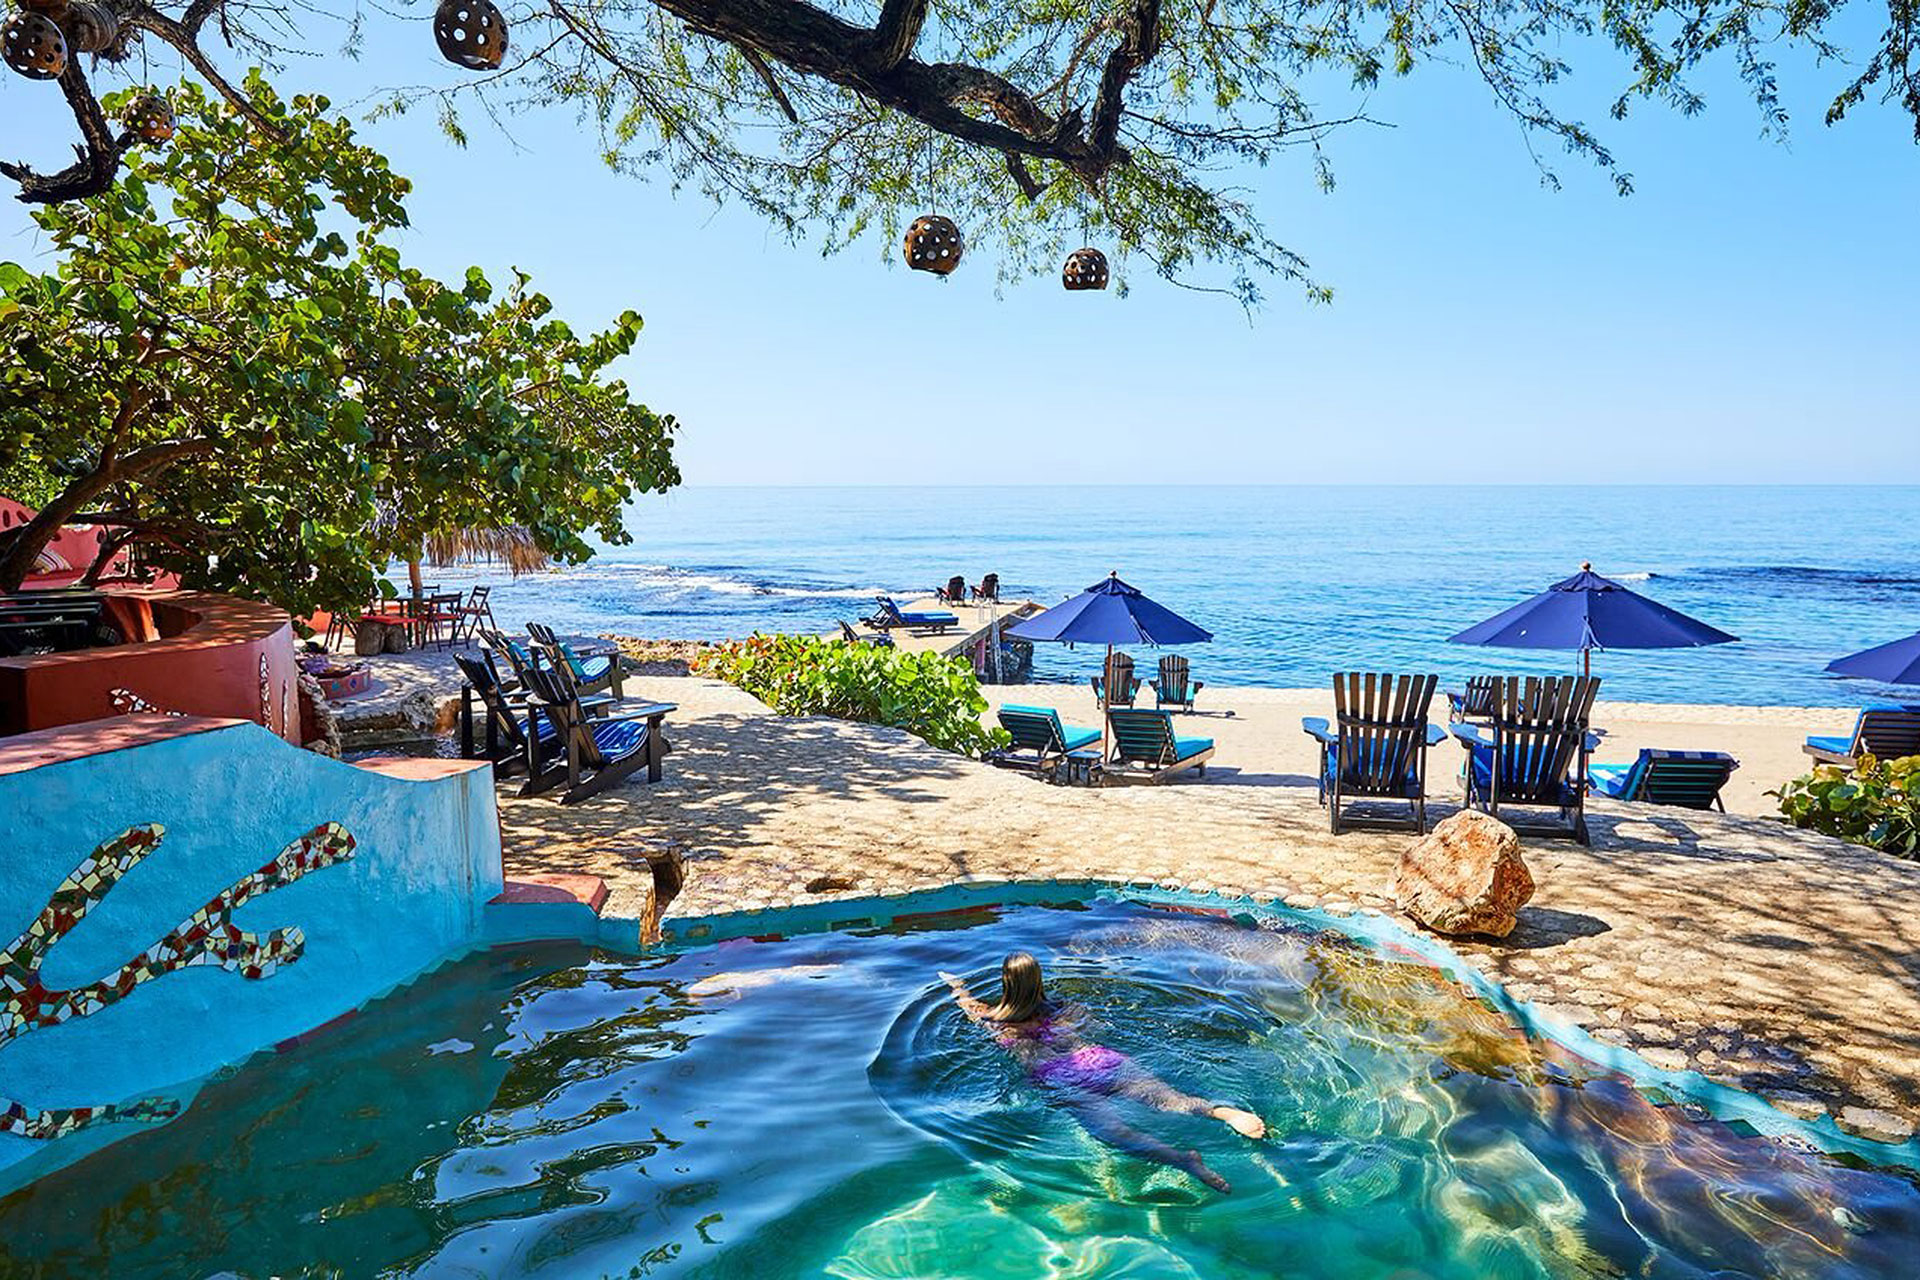 Jakes Treasure Beach Jamaica Hotel; Courtesy of Jakes Treasure Beach Jamaica Hotel